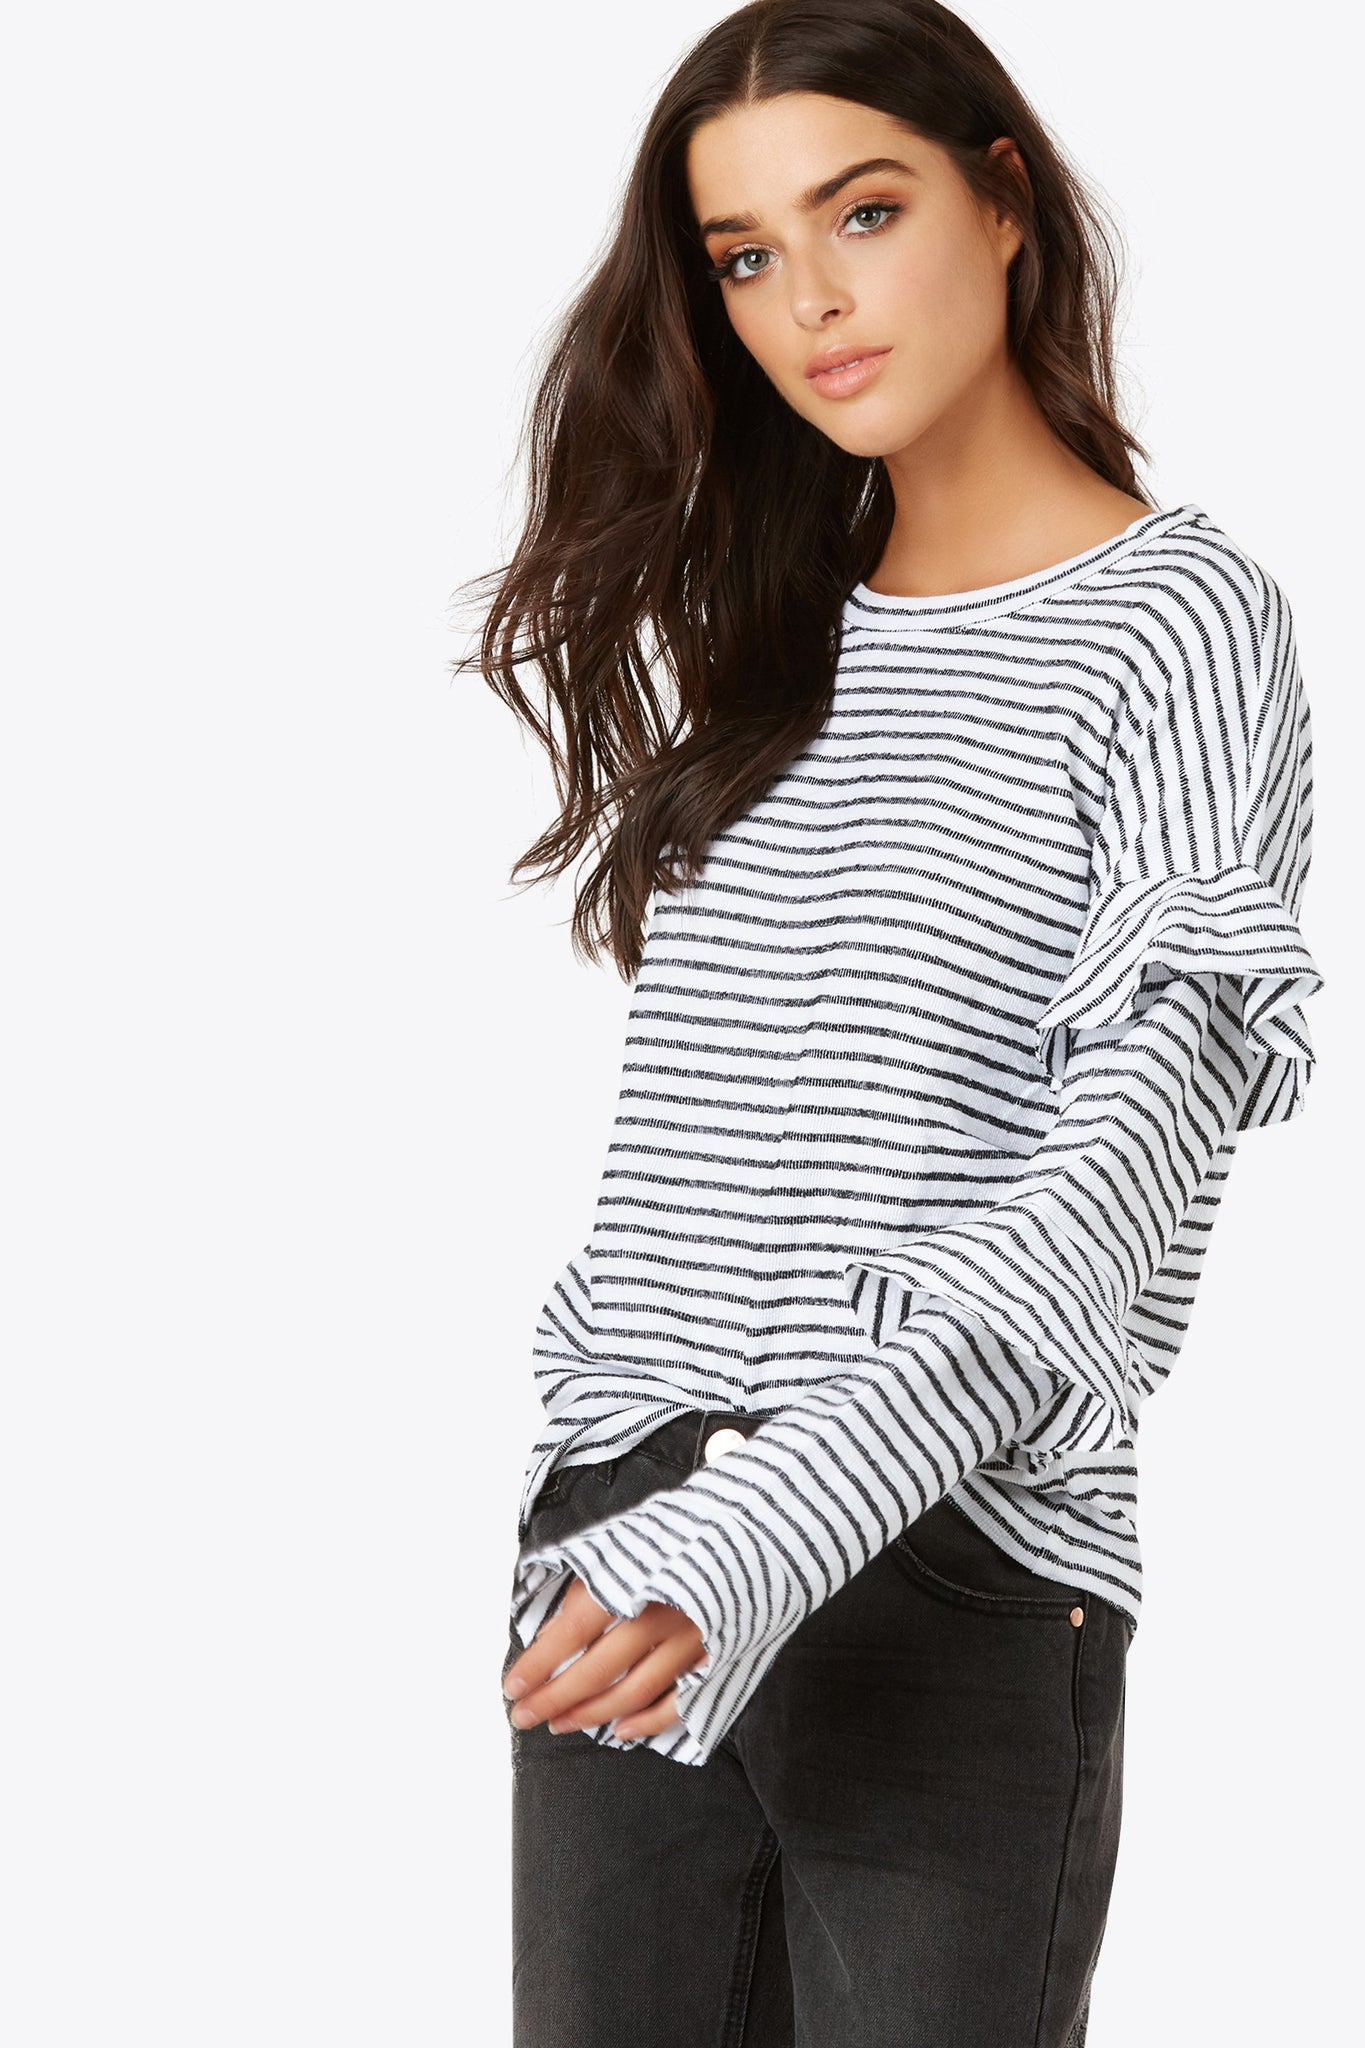 Add some stripes to your day with the relaxed fit knitted crewneck top. Tiered ruffle accents on sleeves.